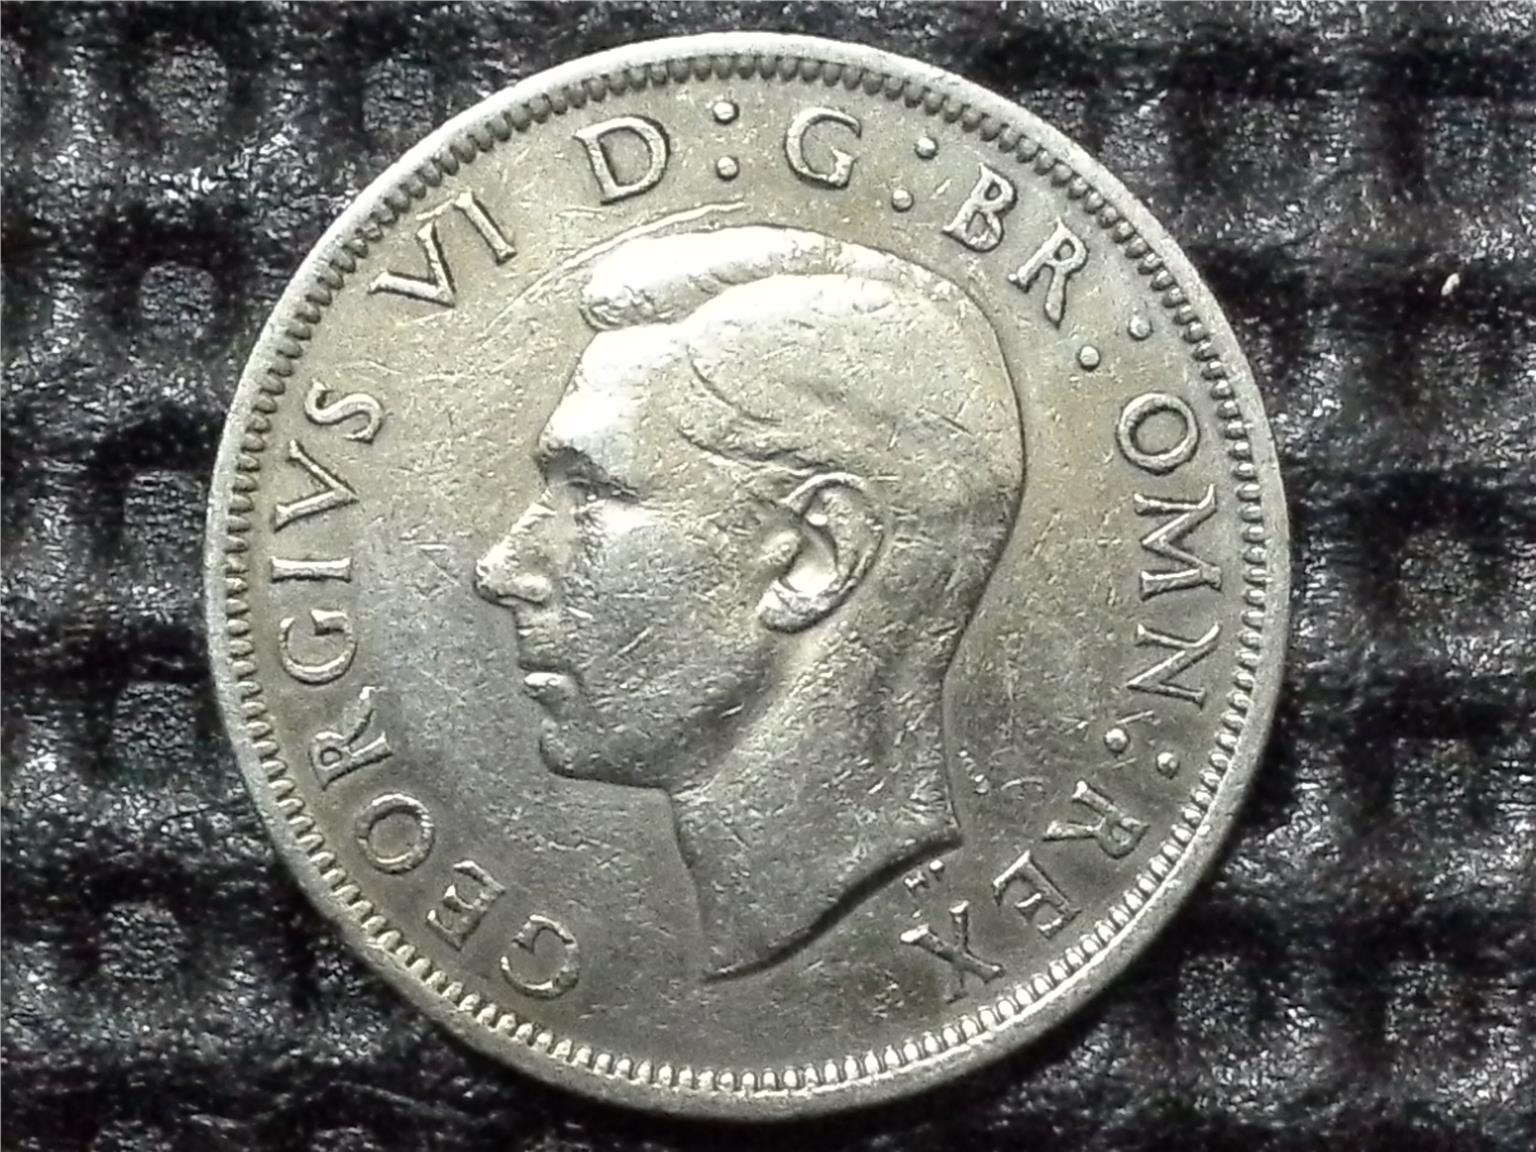 1949 GREAT BRITAIN KGVI HALF CROWN LARGE COIN 32mm